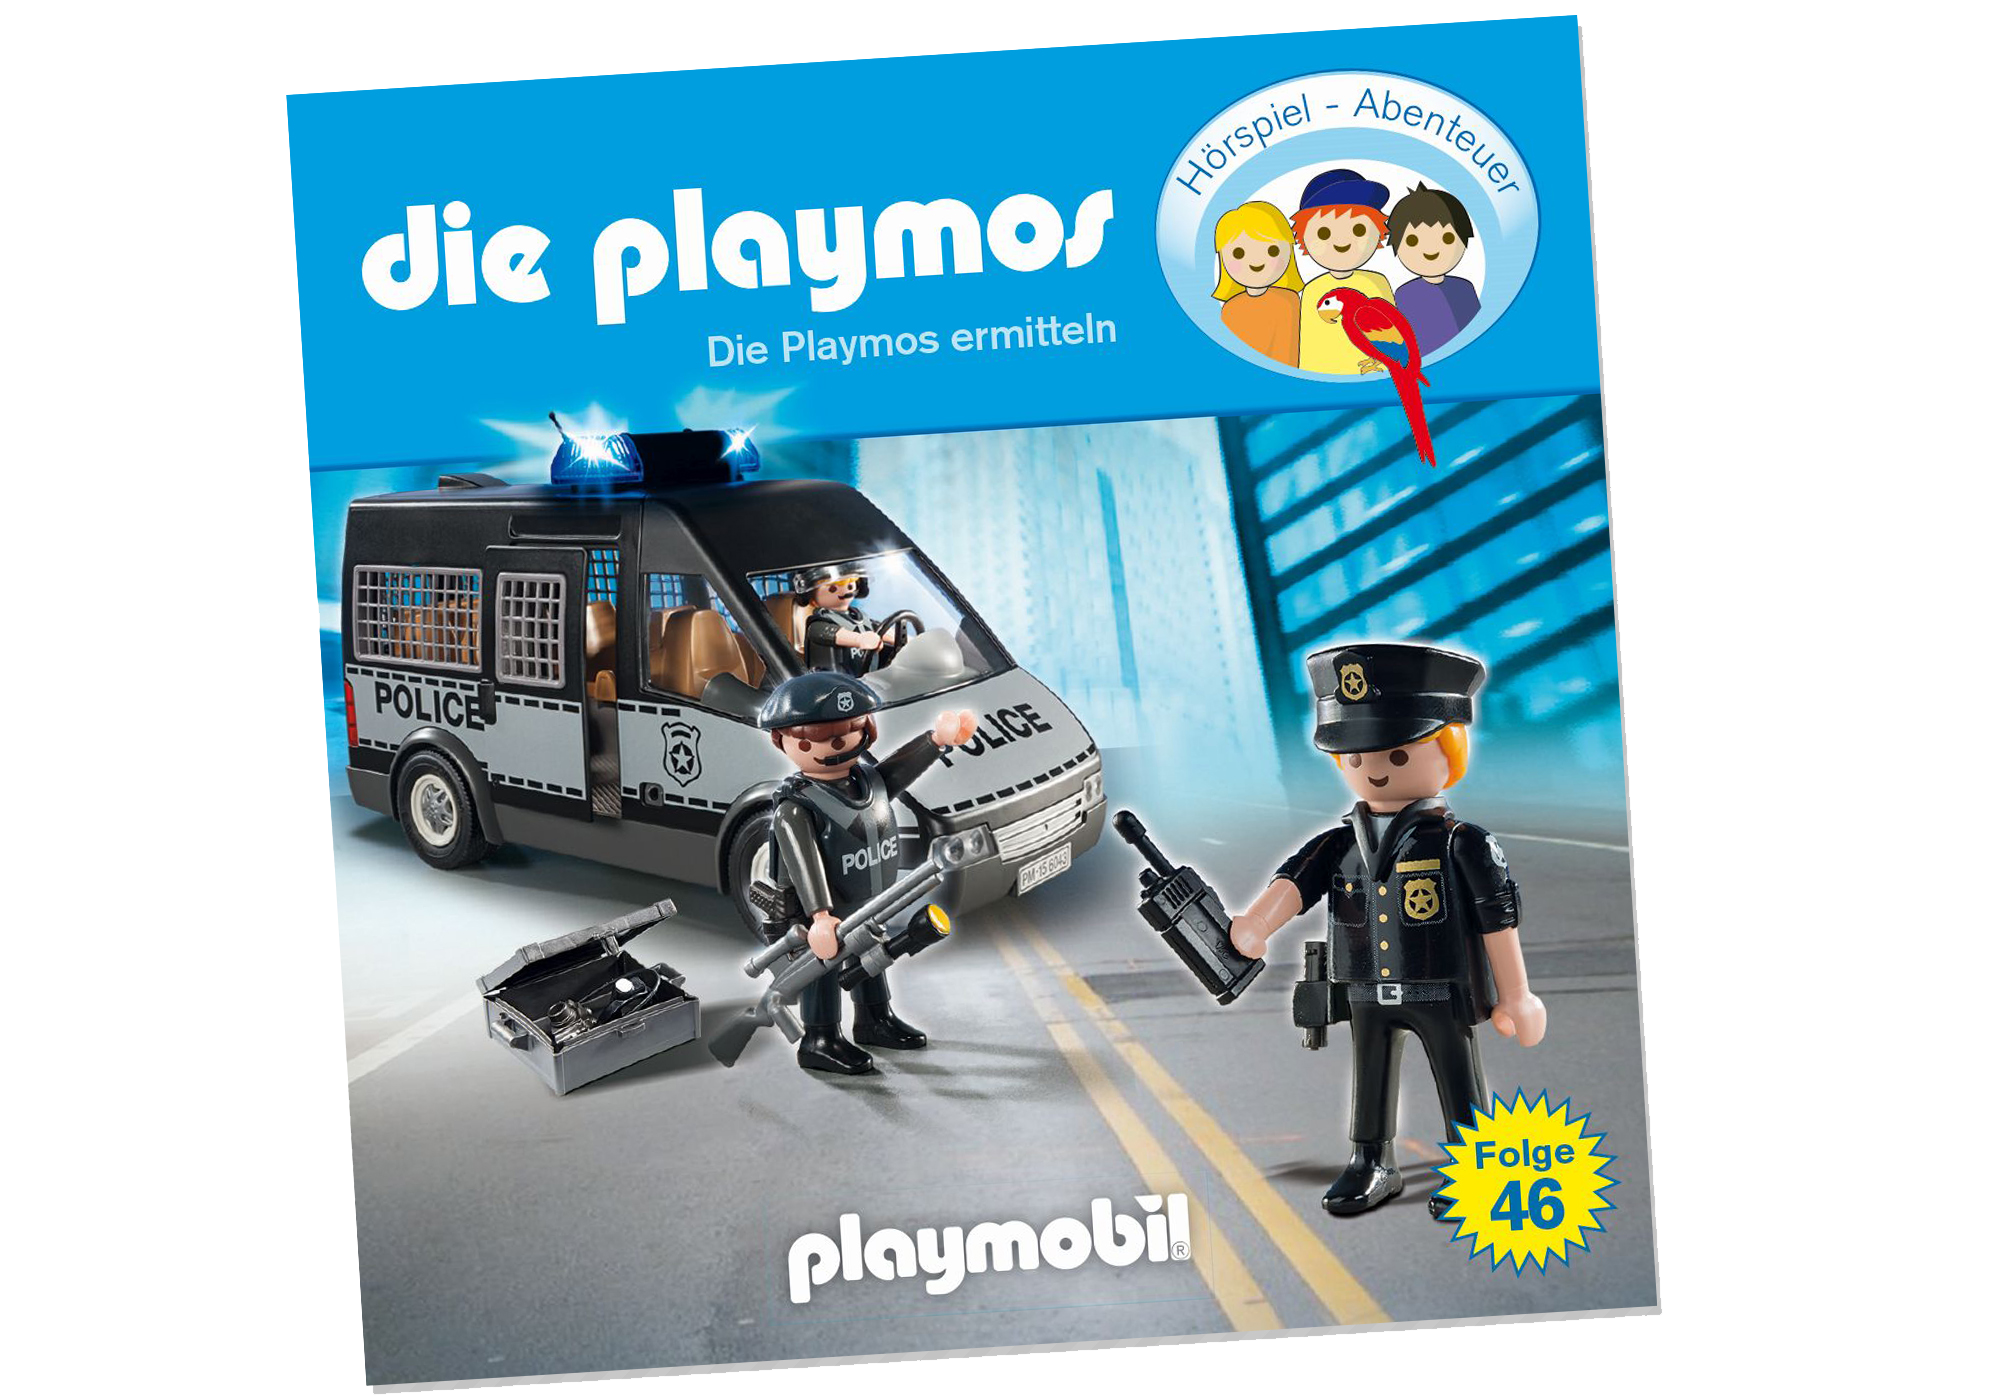 http://media.playmobil.com/i/playmobil/80253_product_detail